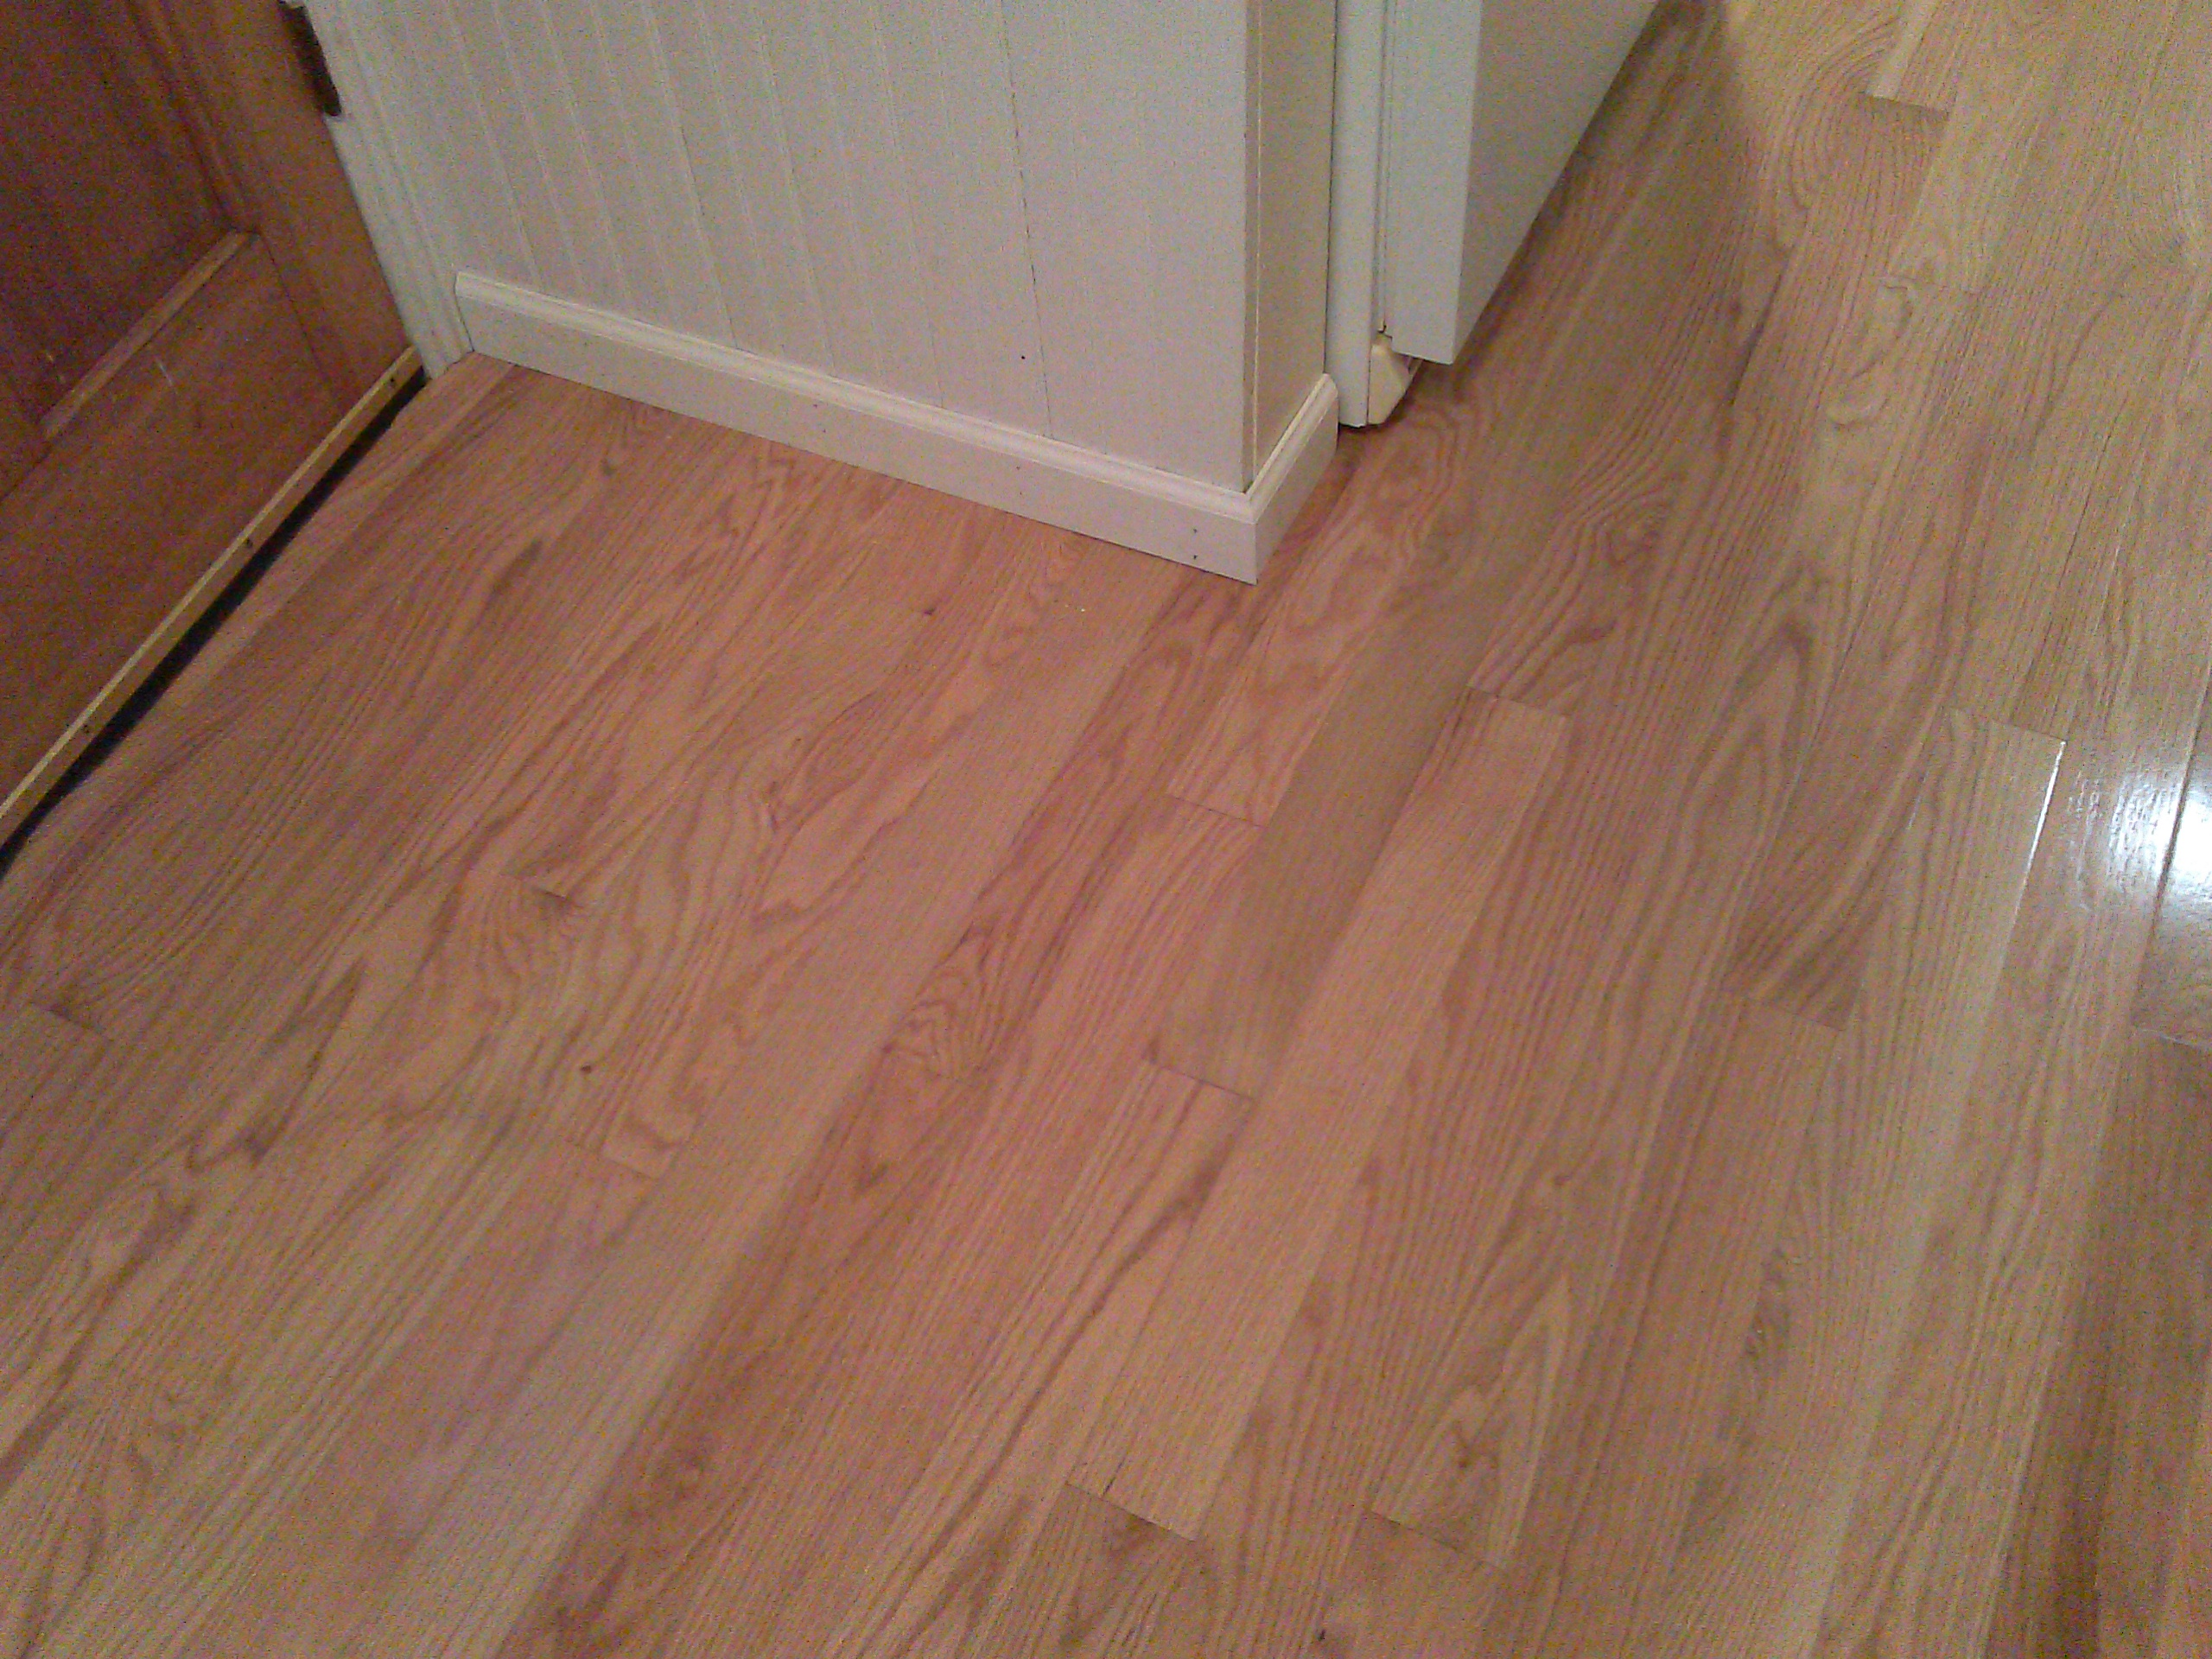 Oak Hardwood Flooring ~ Red oak vs white hardwood the flooring